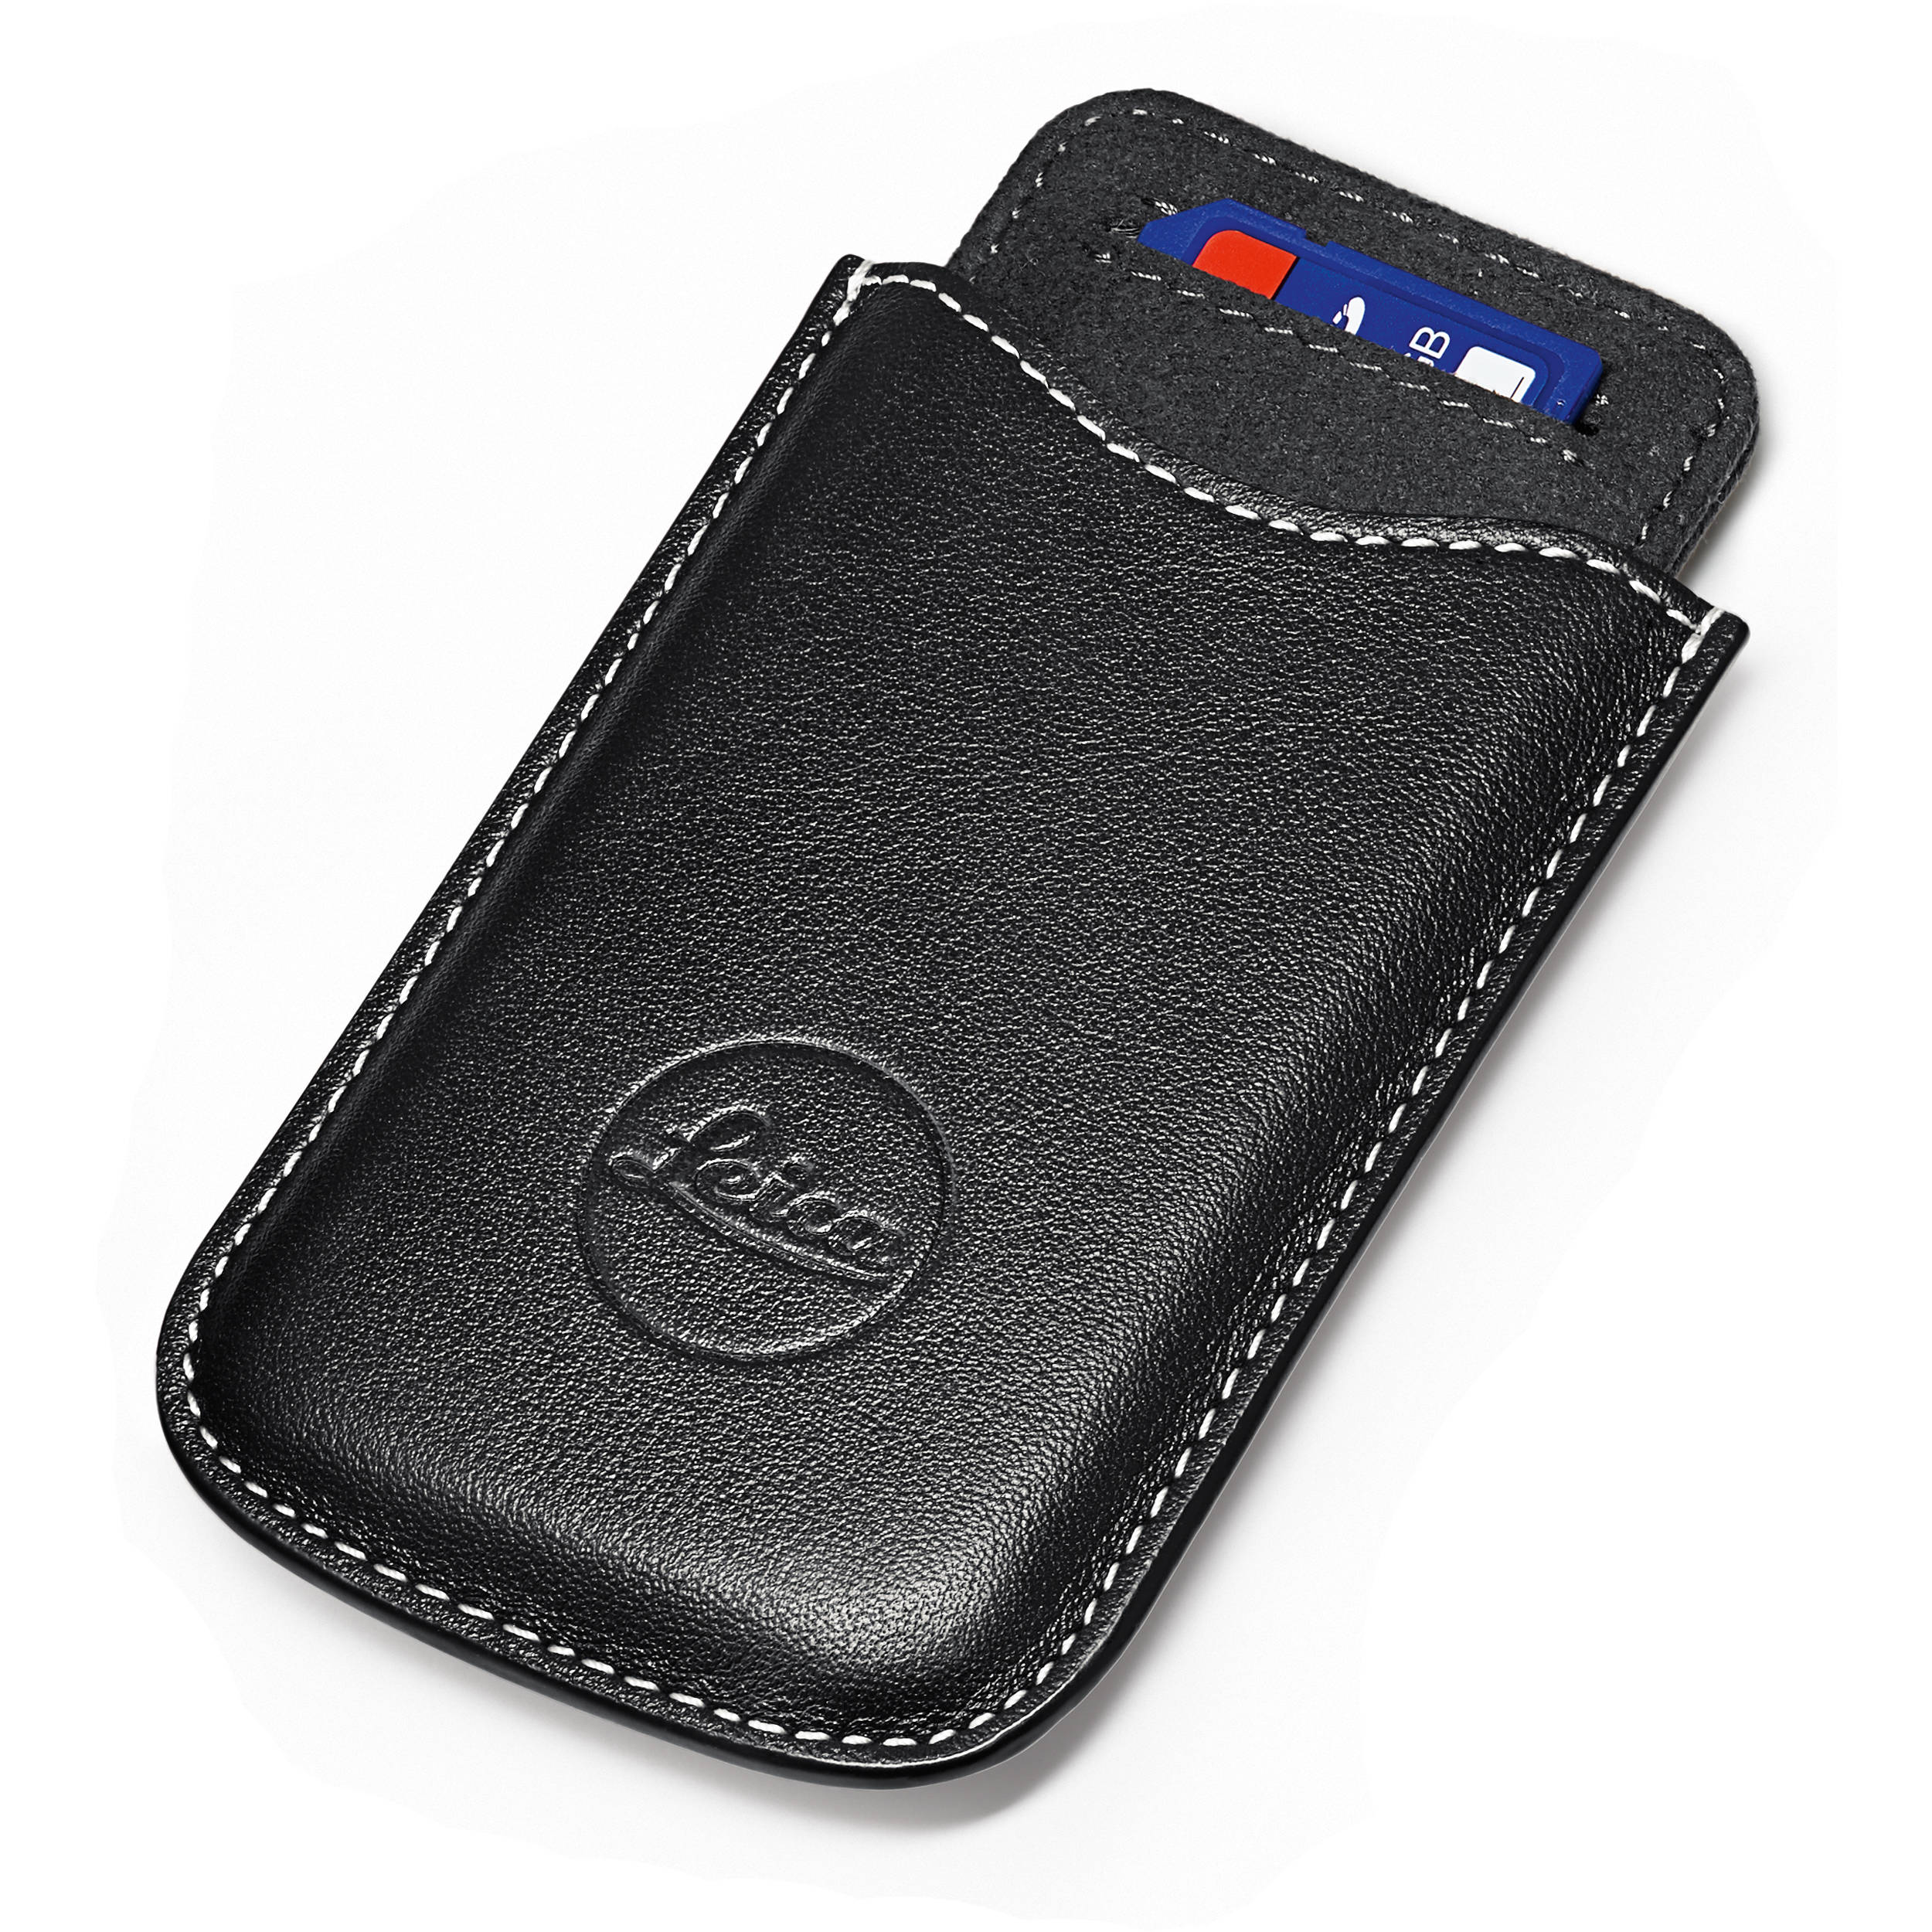 30931a499ea Leica SD and Credit Card Holder (Black) 18538 B&H Photo Video